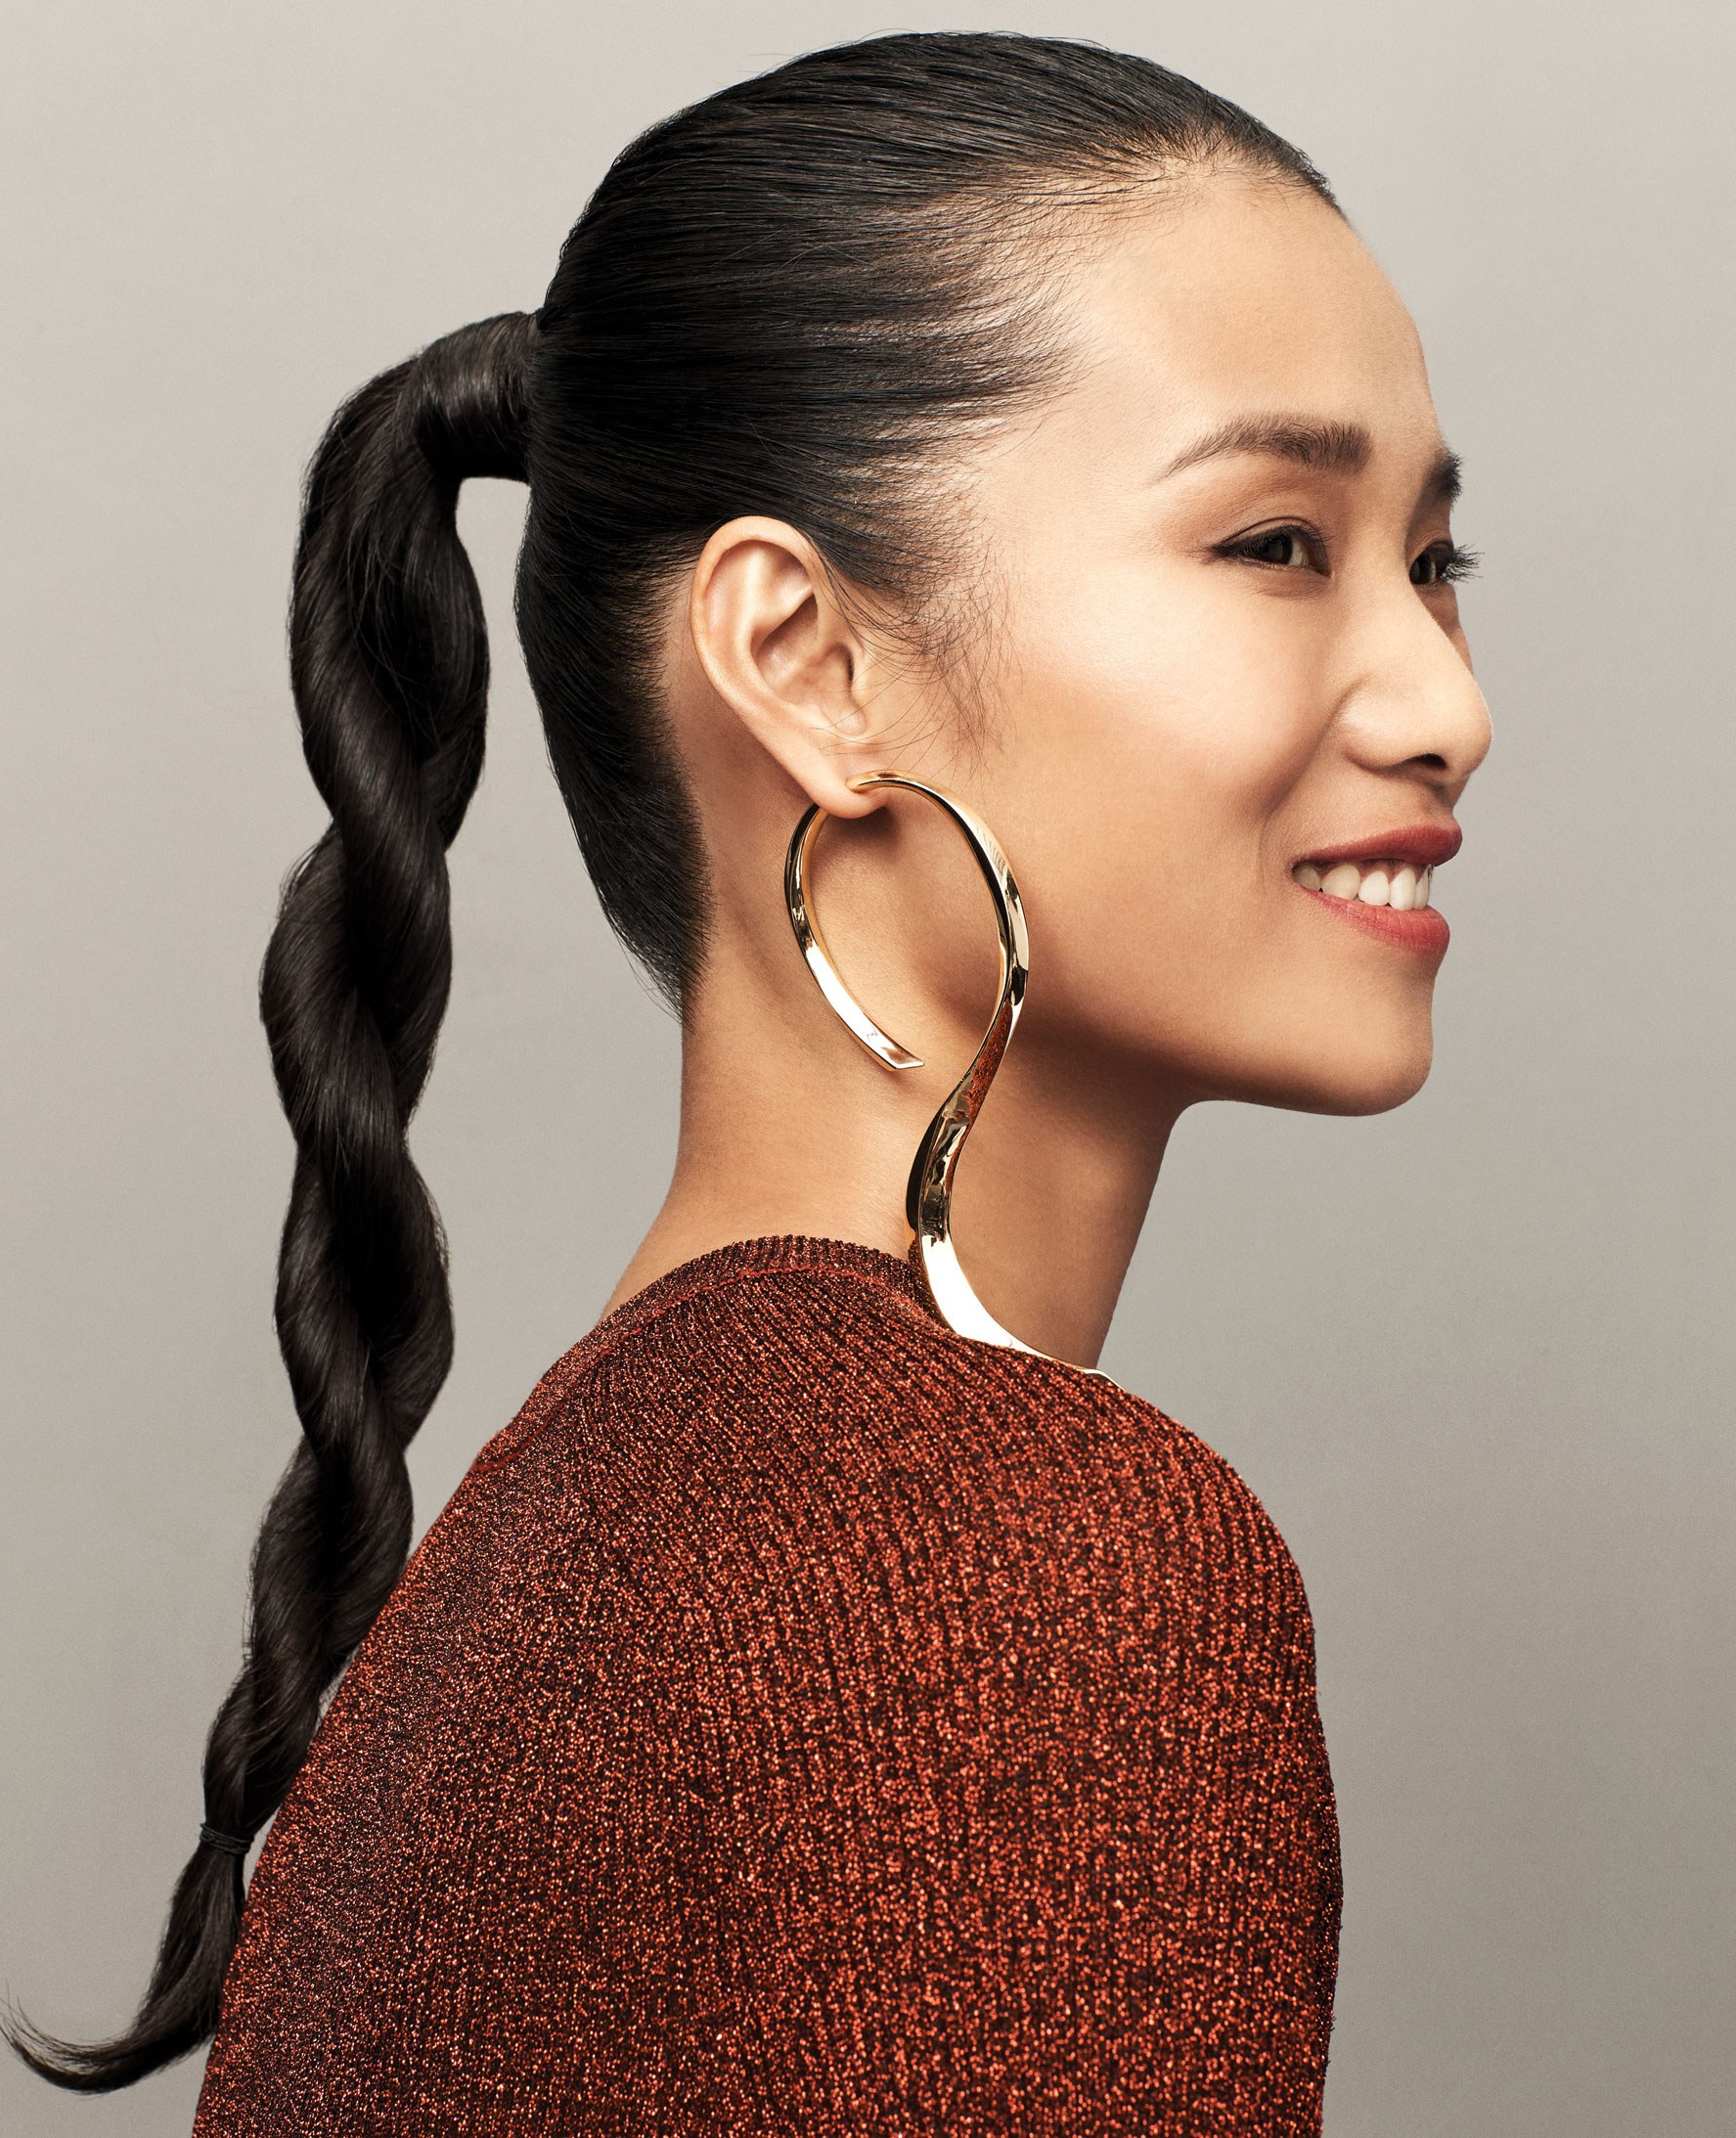 2018 Chain Ponytail Hairstyles Throughout The Best Statement Earrings (And Hairstyles) To Wear To A Holiday (View 1 of 20)